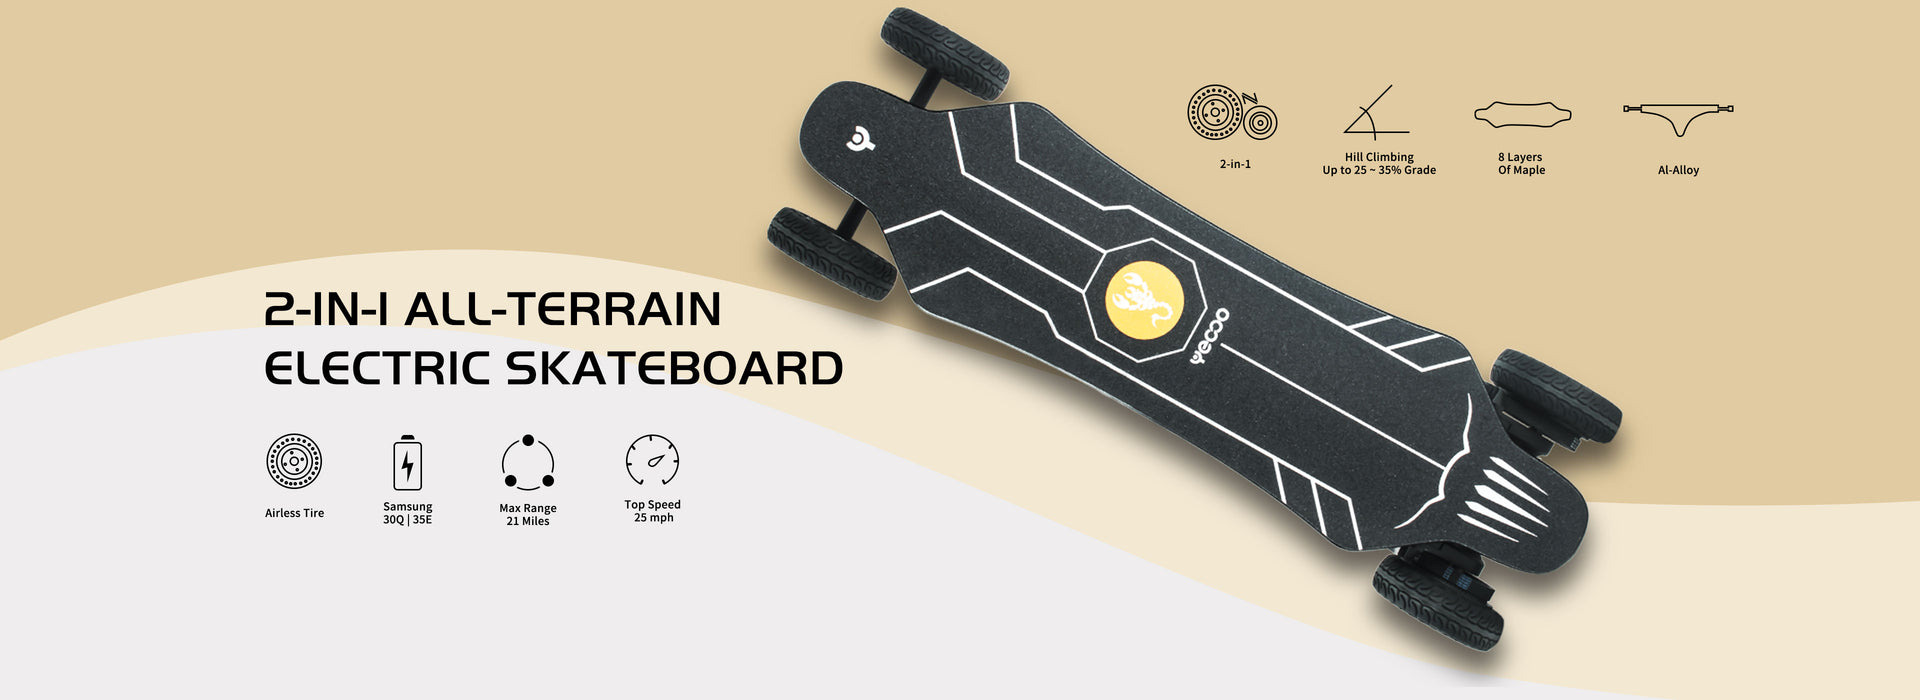 Yecoo GTS All-Terrain Electric Skateboard